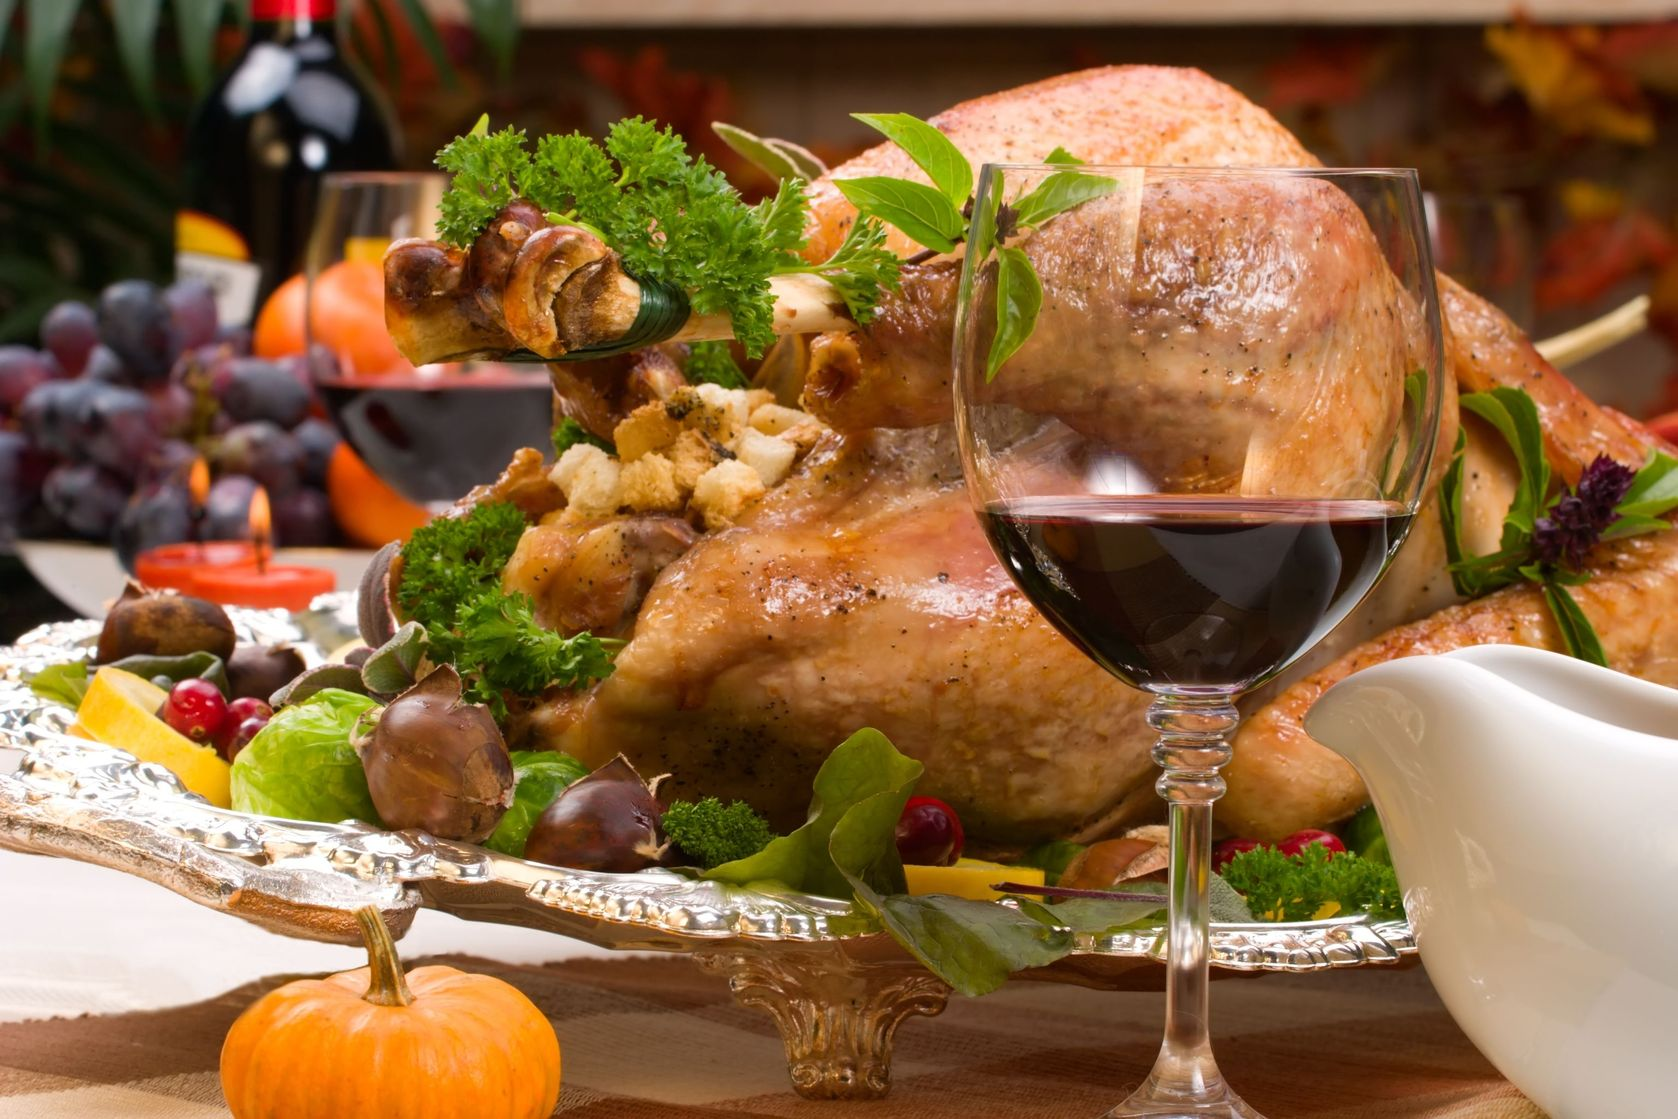 turkey with a glass of wine